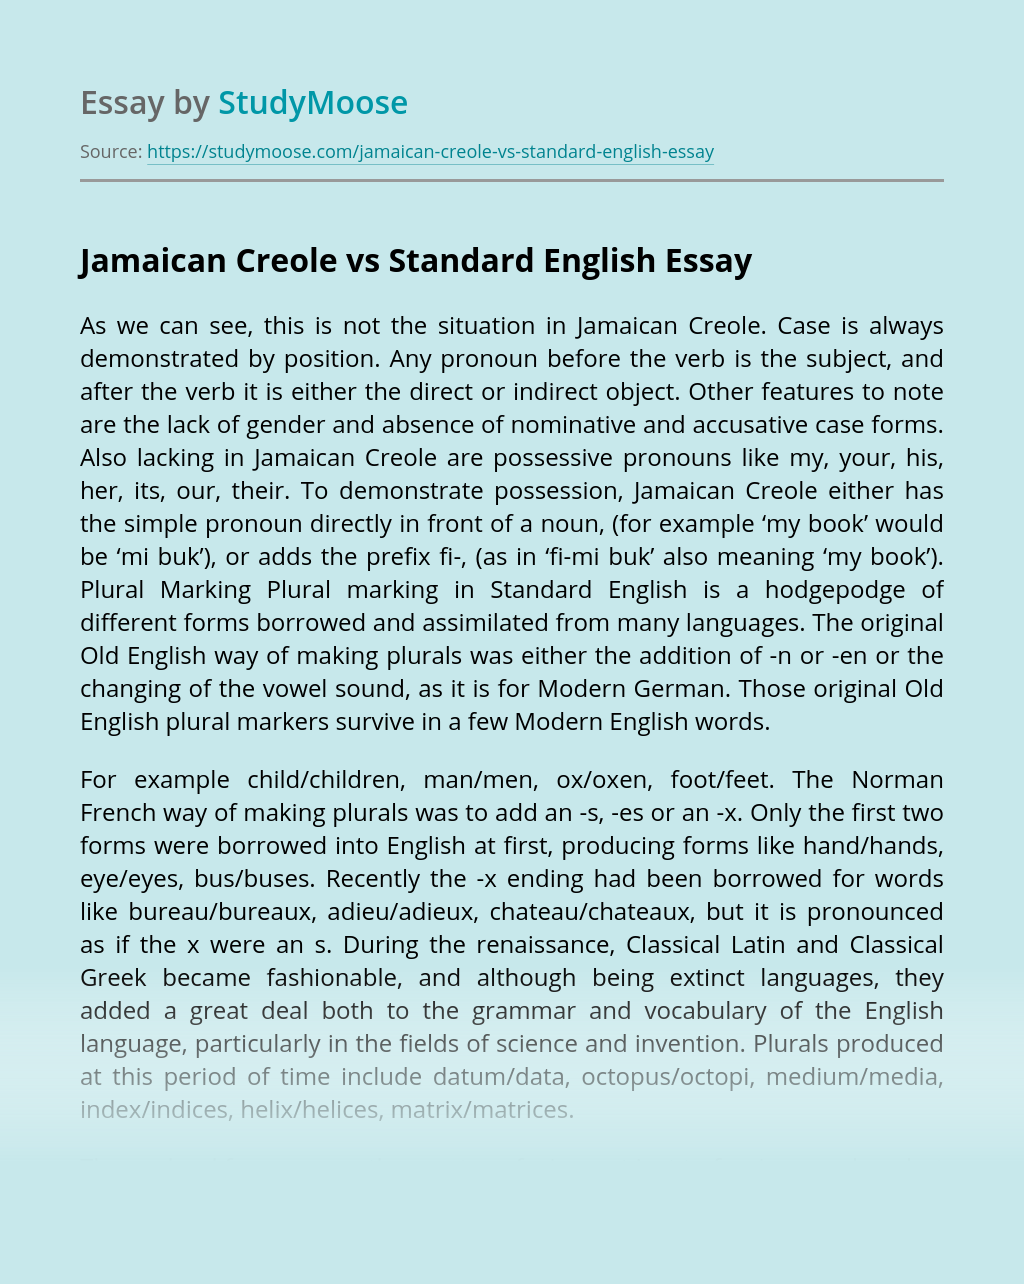 Jamaican Creole vs Standard English